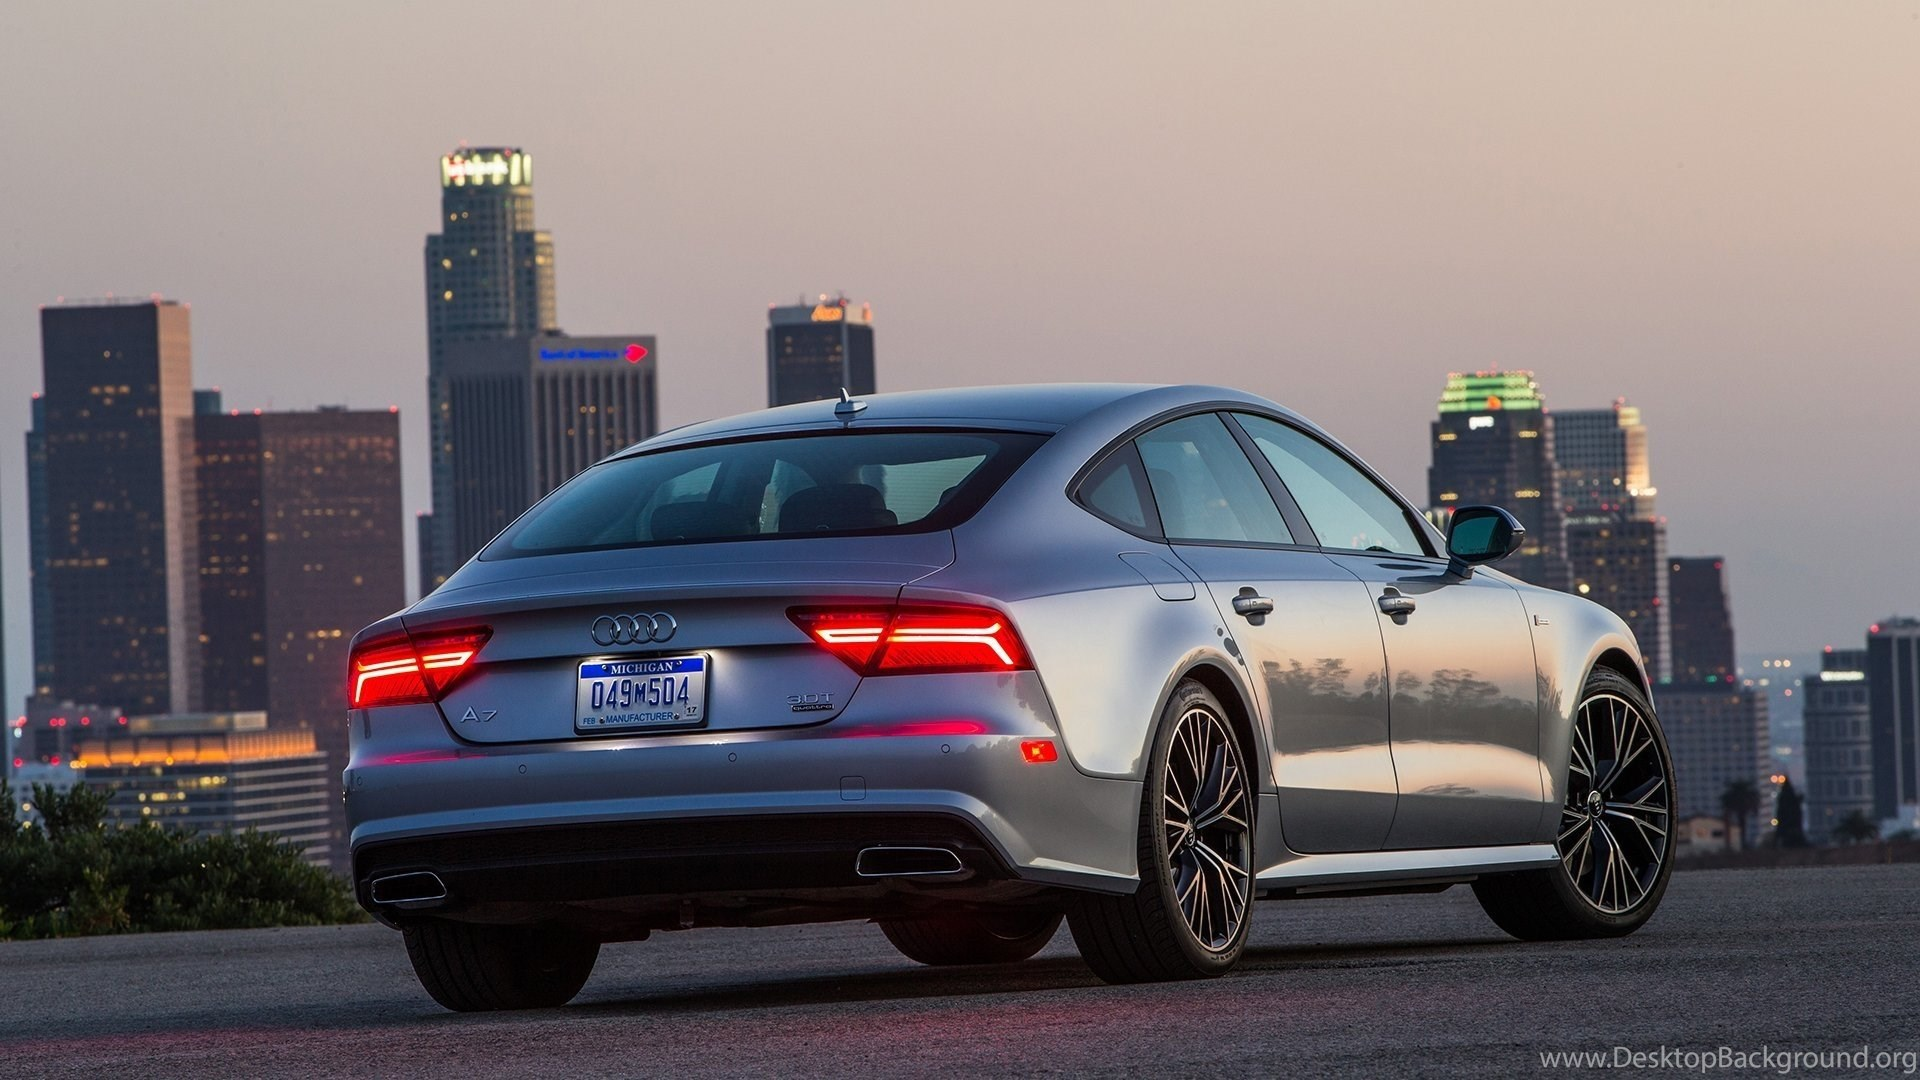 Audi A7 Wallpapers 1366x768 Archives Page 3 Of 6 Desktop Background